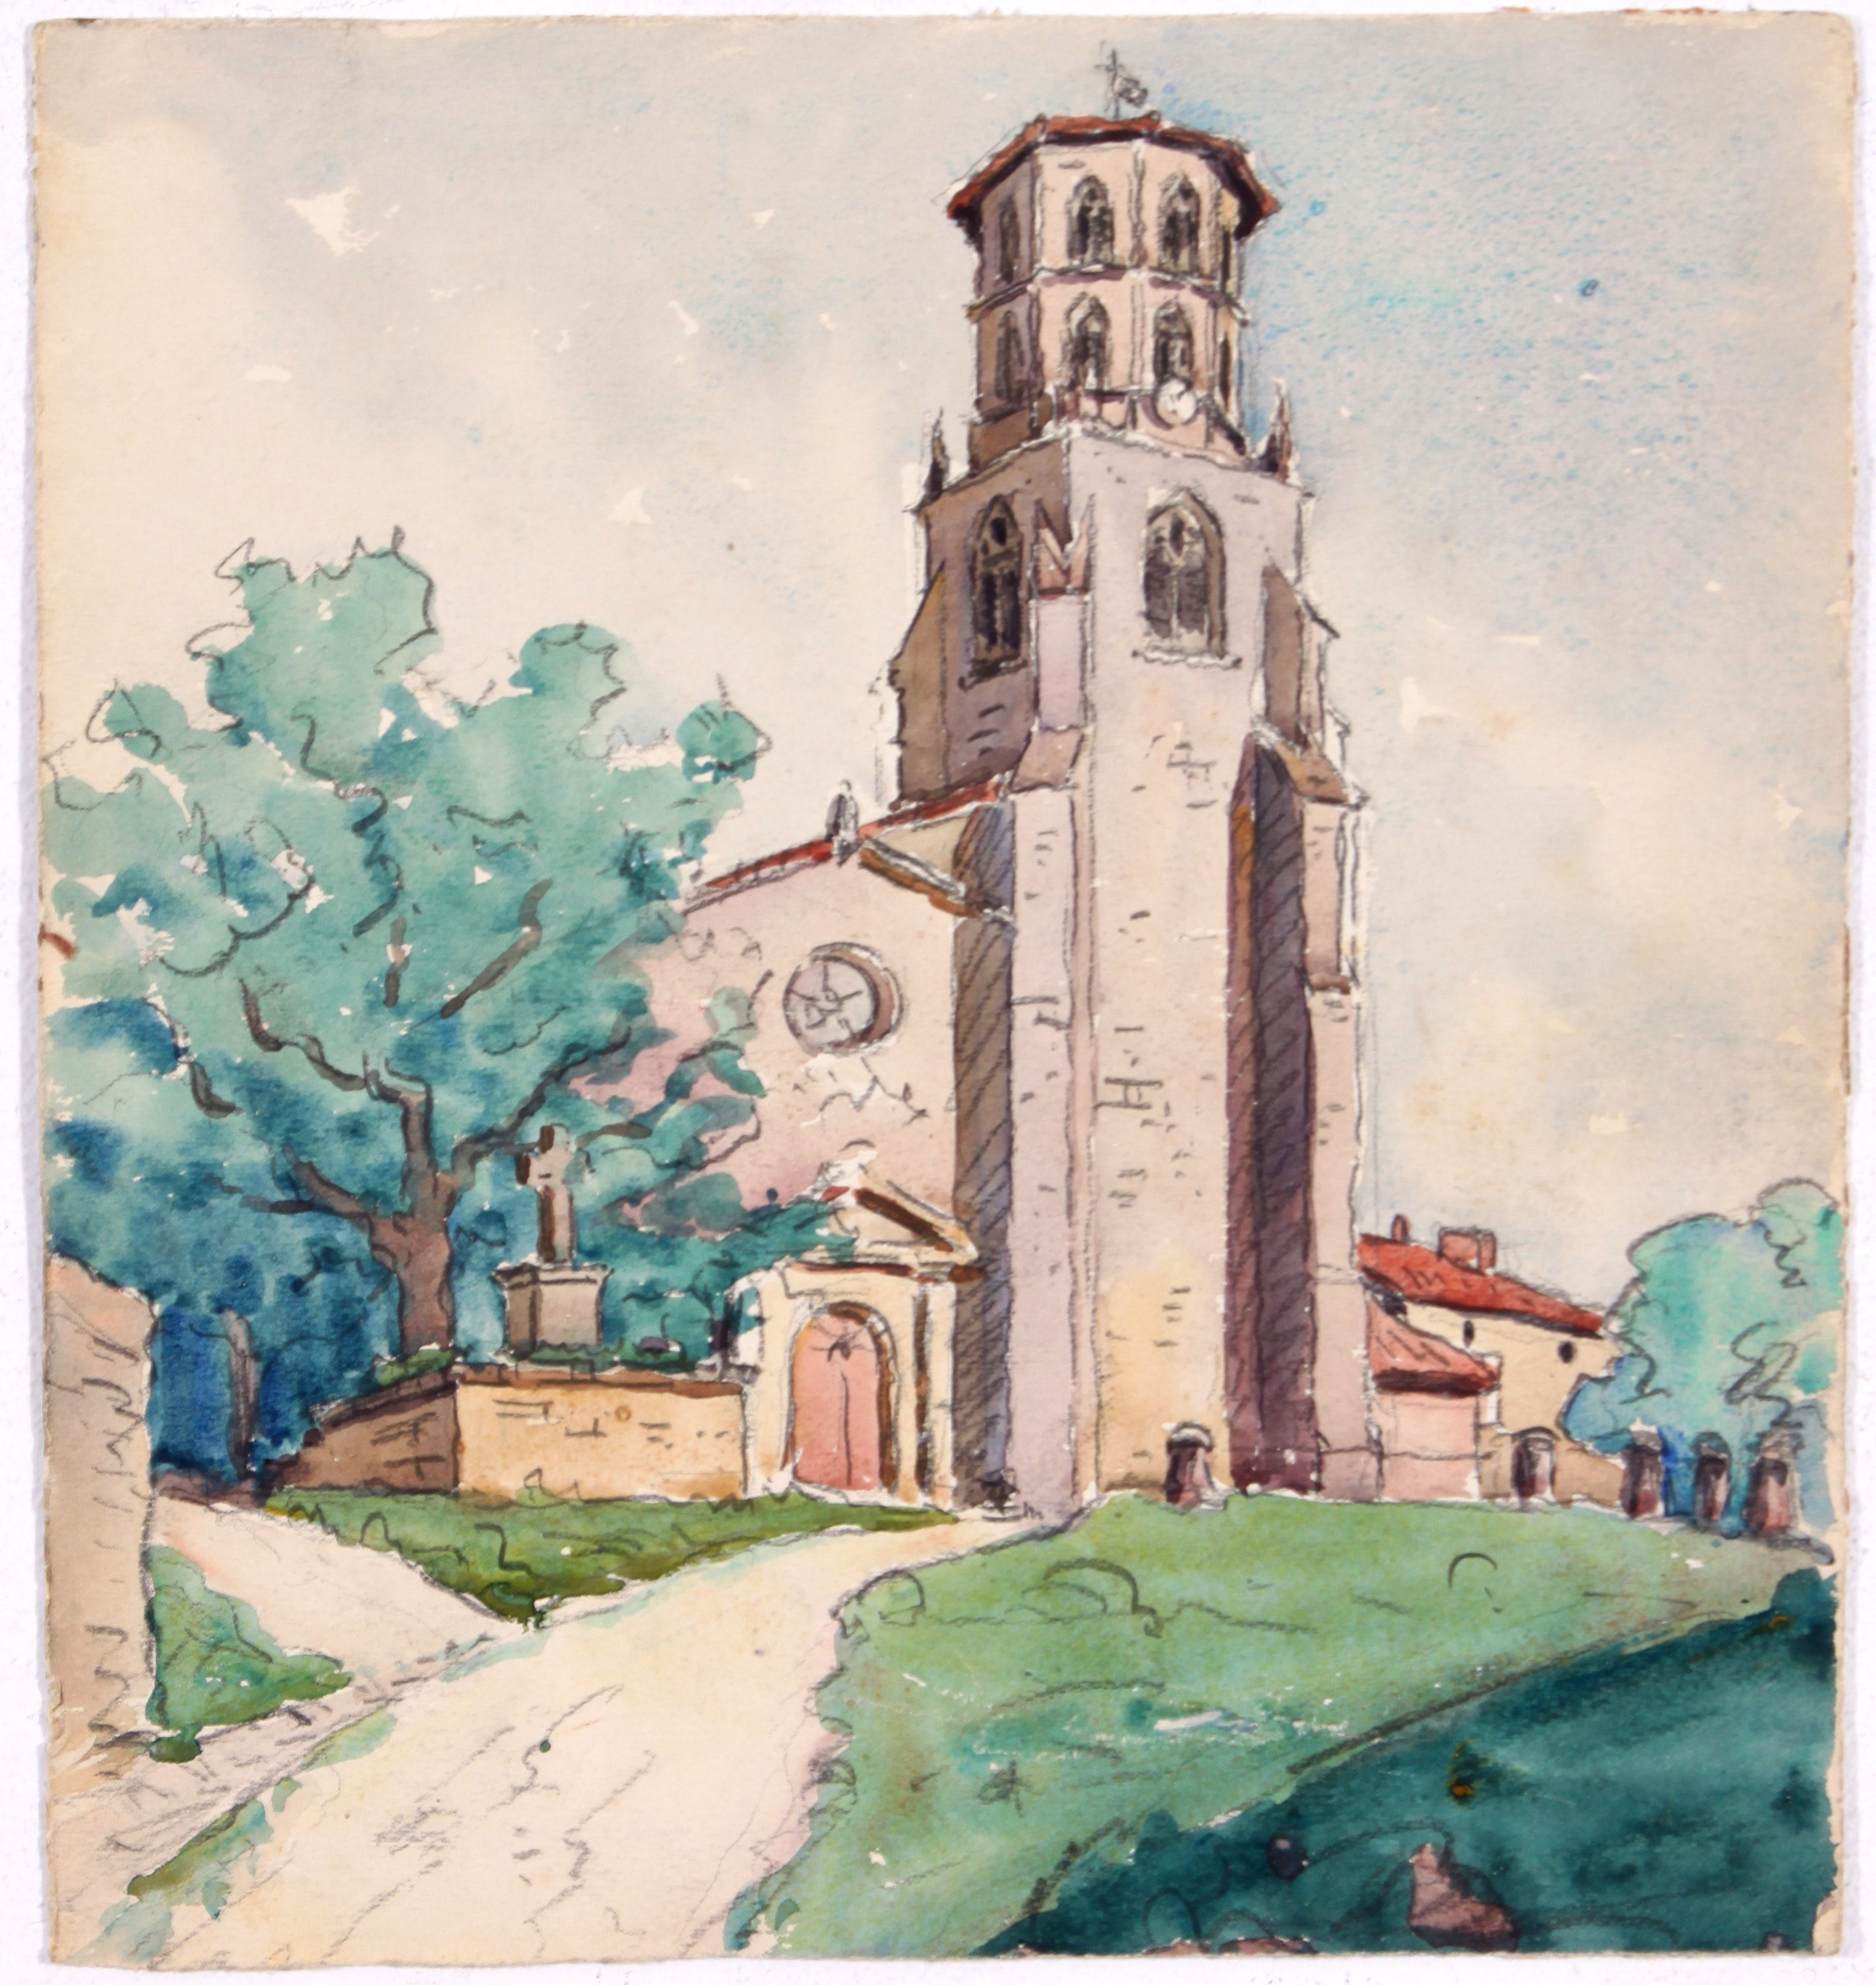 Original Church in Watercolor by Raoul Monory